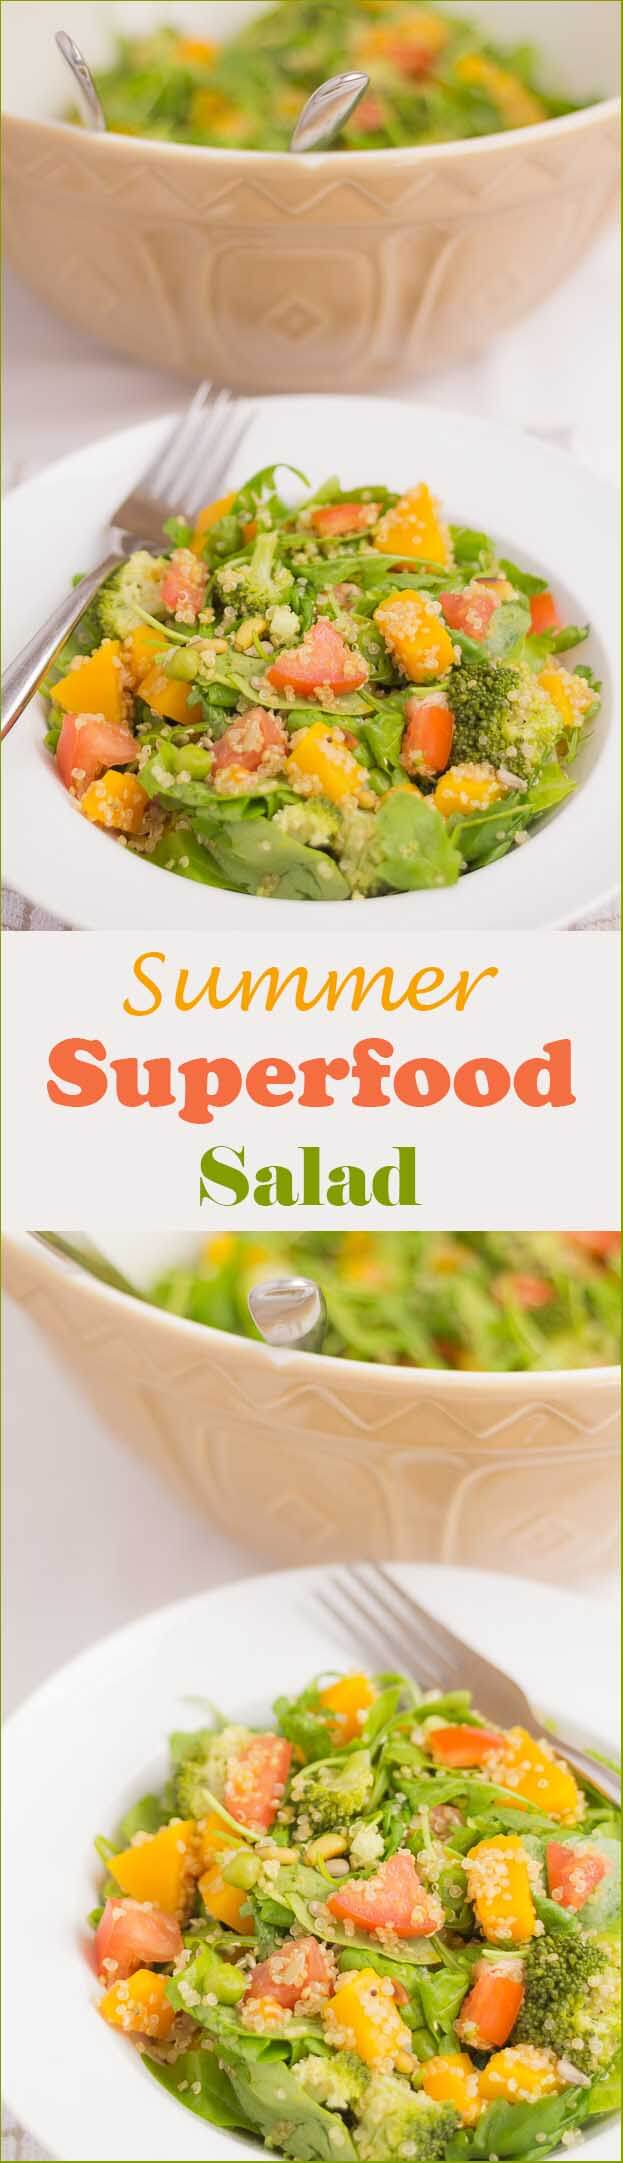 Stuffed full of healthy superfoods plus a wholegrain boost from the quinoa, this vegetarian summer superfood salad is sure to satisfy all appetites.